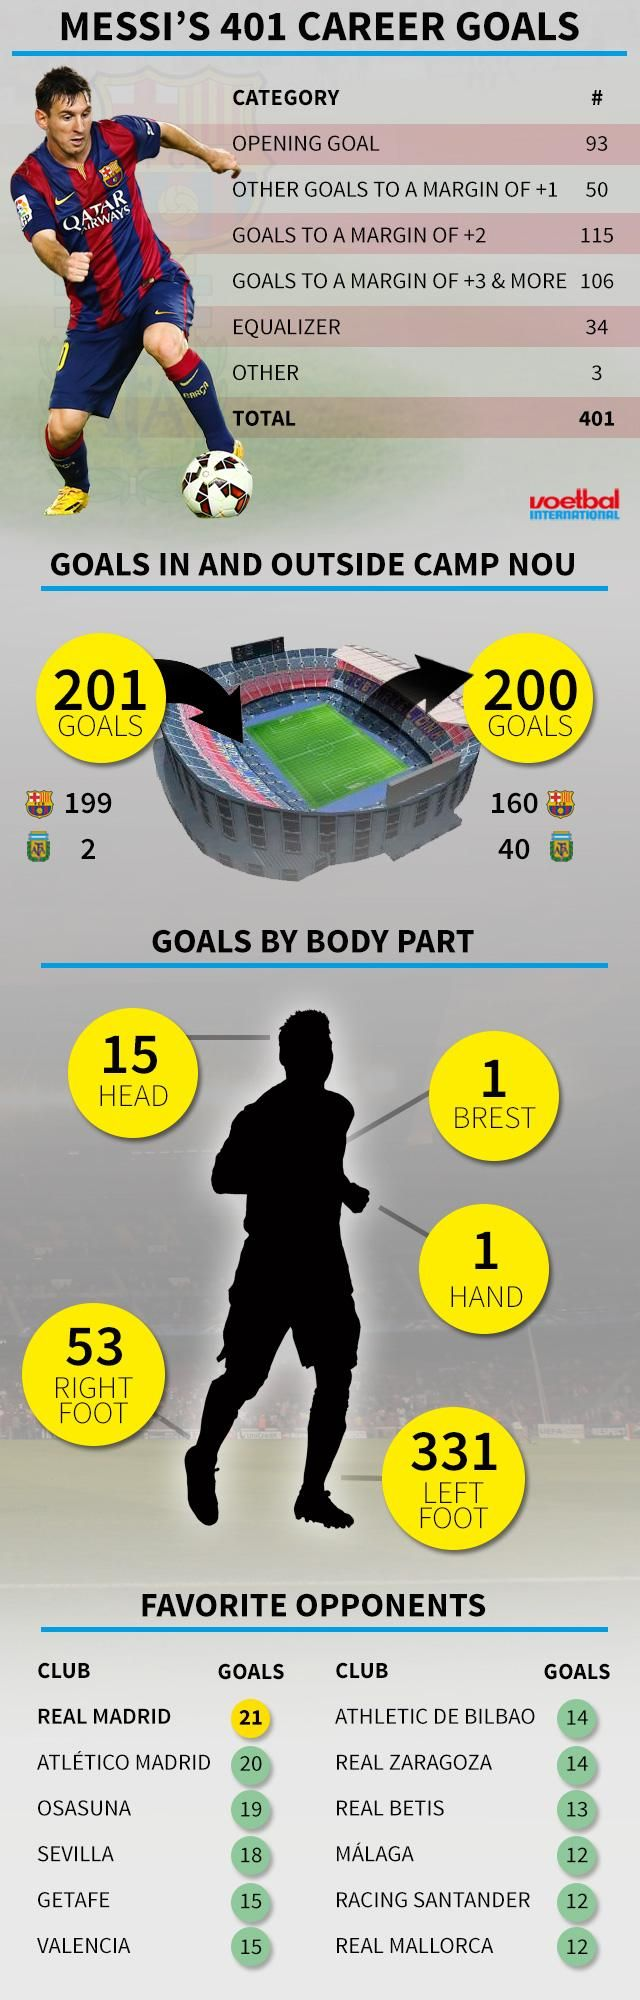 Via @LeanderOnFox: Amazing Lionel Messi goals infographic by @MijlpaalMin from @VI_nl:""